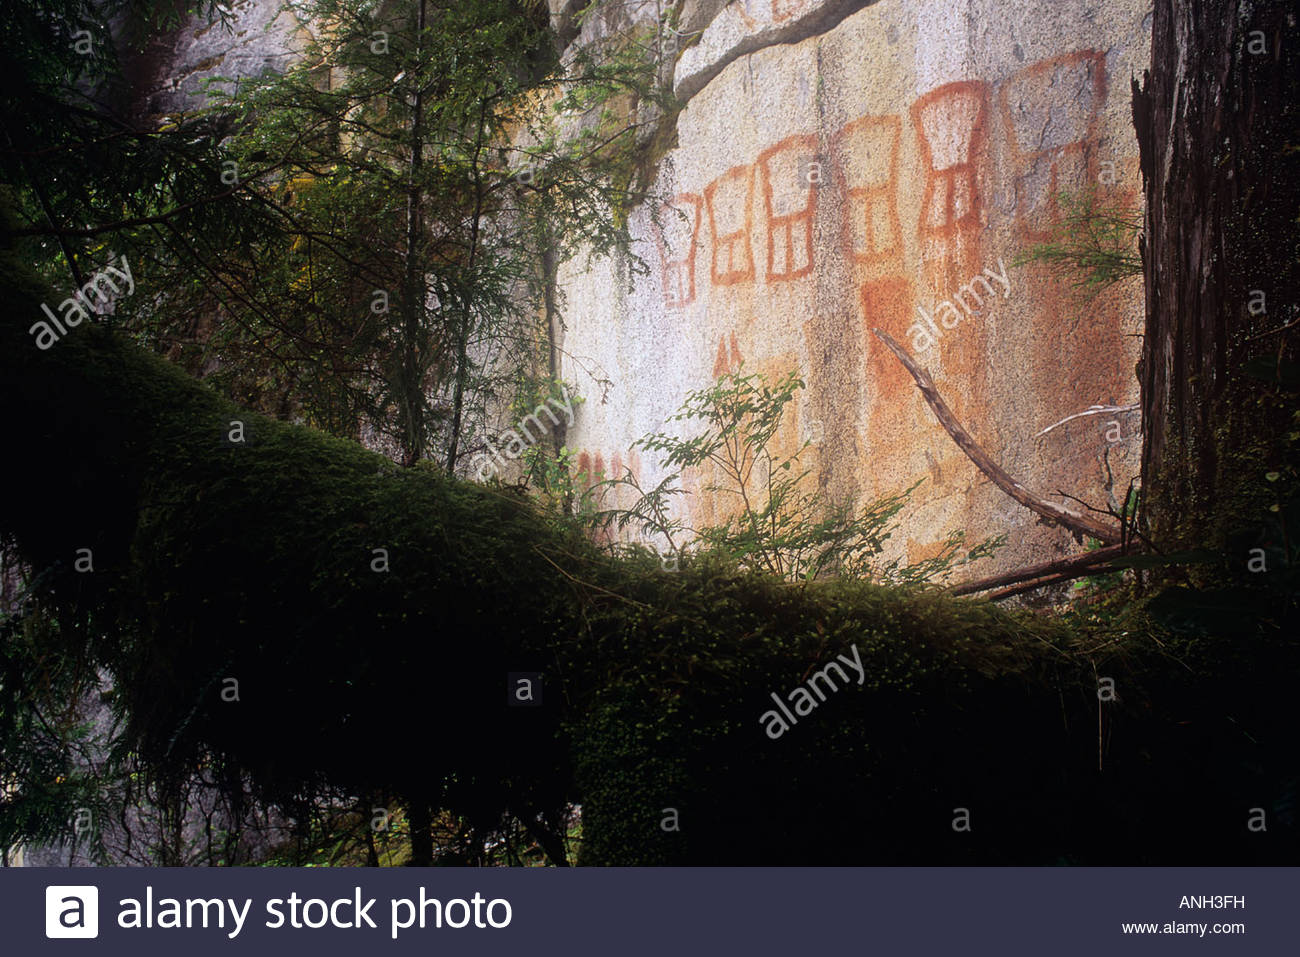 First Nations pictograph, Seymour inlet, Great Bear Rainforest, British Columbia, Canada. - Stock Image